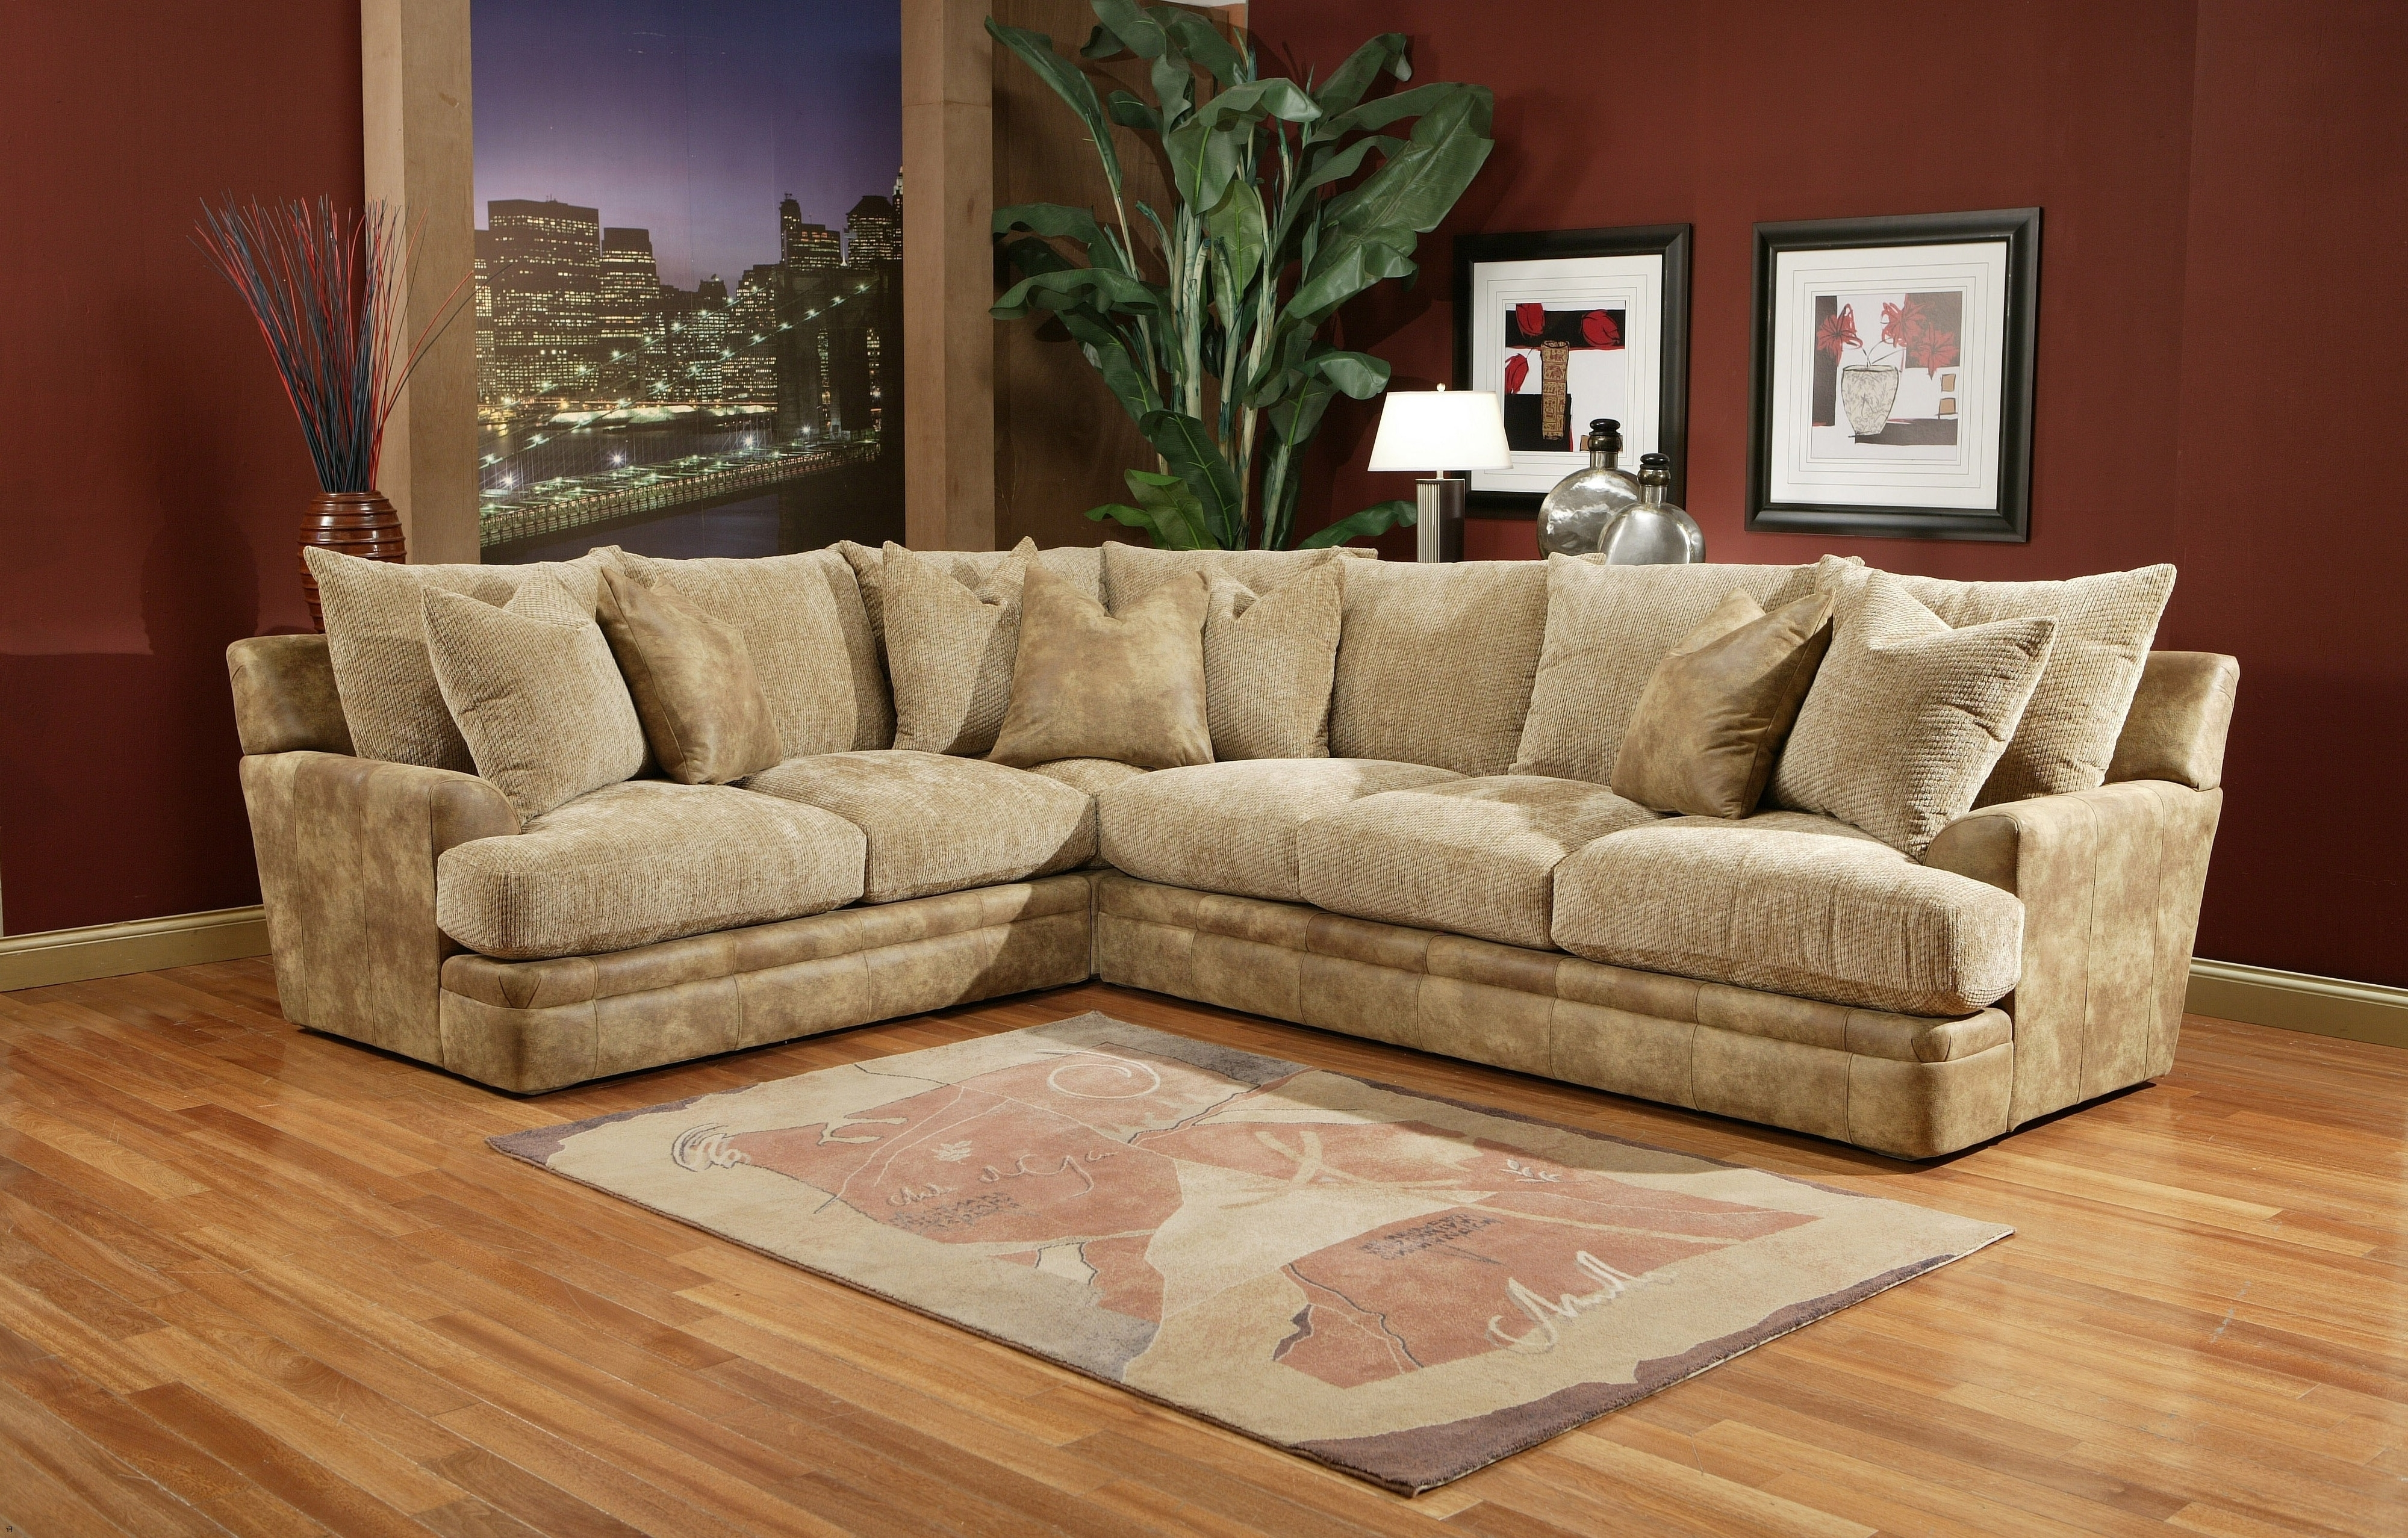 Down Filled Sectional Sofas Pertaining To Well Known Down Sectional Sofa Best Filled Sofas Wrapped (Gallery 19 of 20)